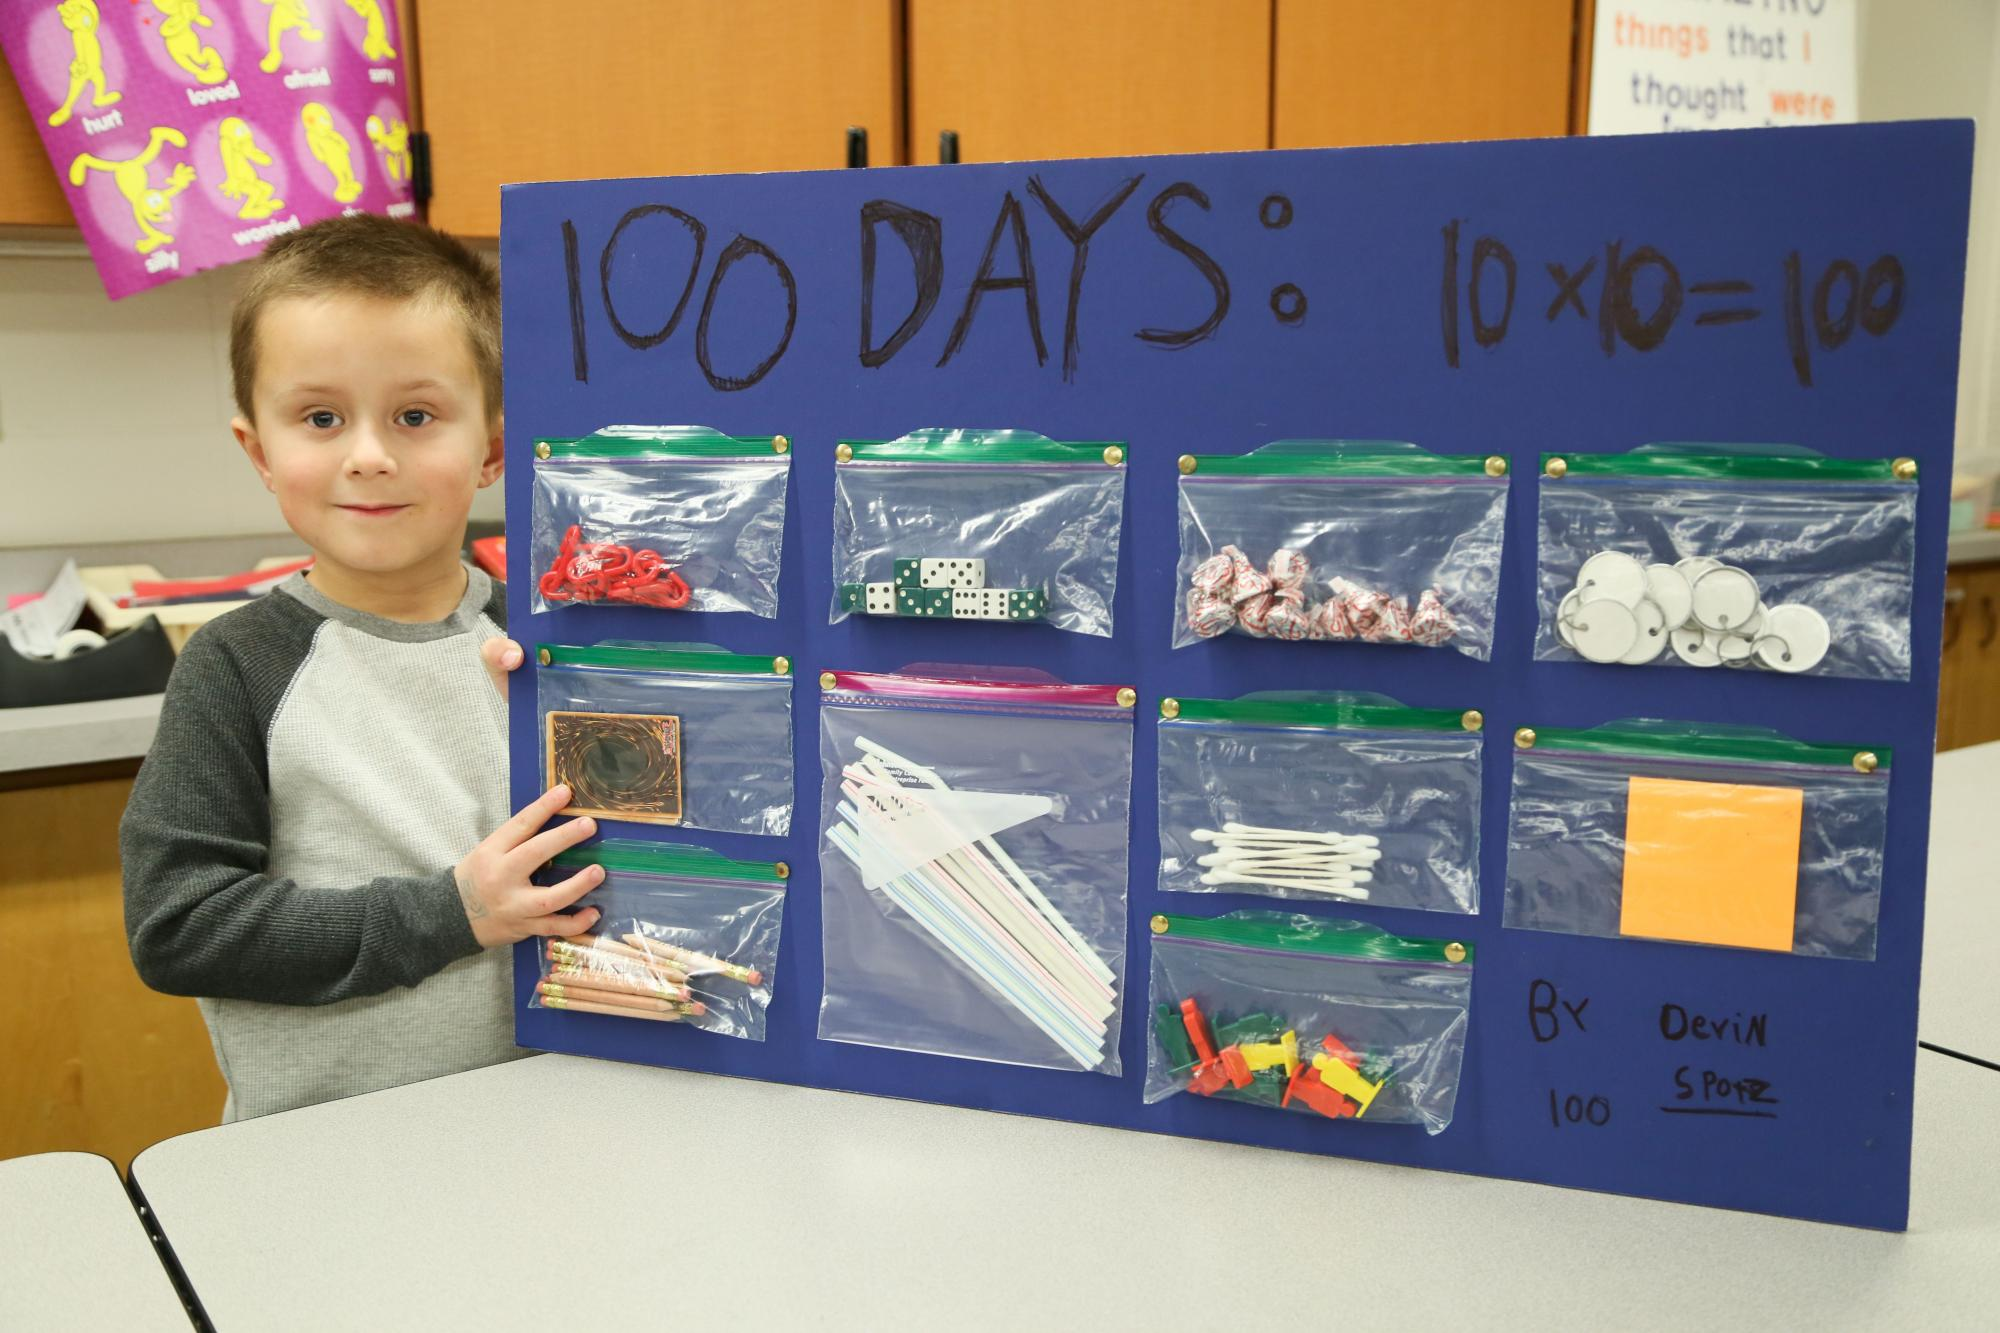 Beattie boy stands with his board of 100 things to celebrate 100 days of school.